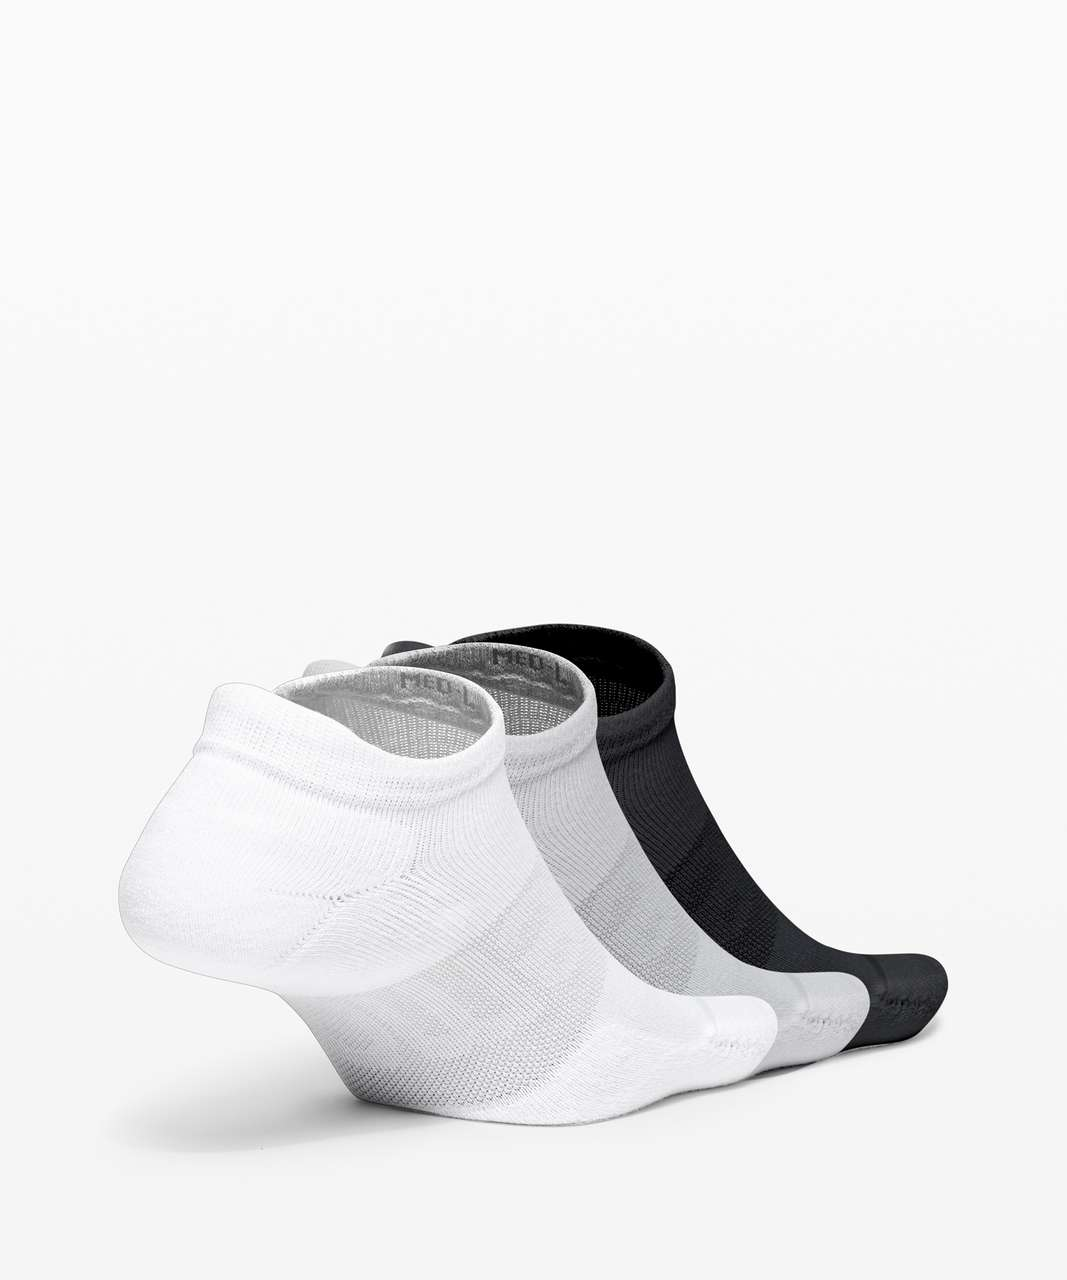 Lululemon Daily Stride Low Ankle Sock *3 Pack - White / Heather Grey / Black